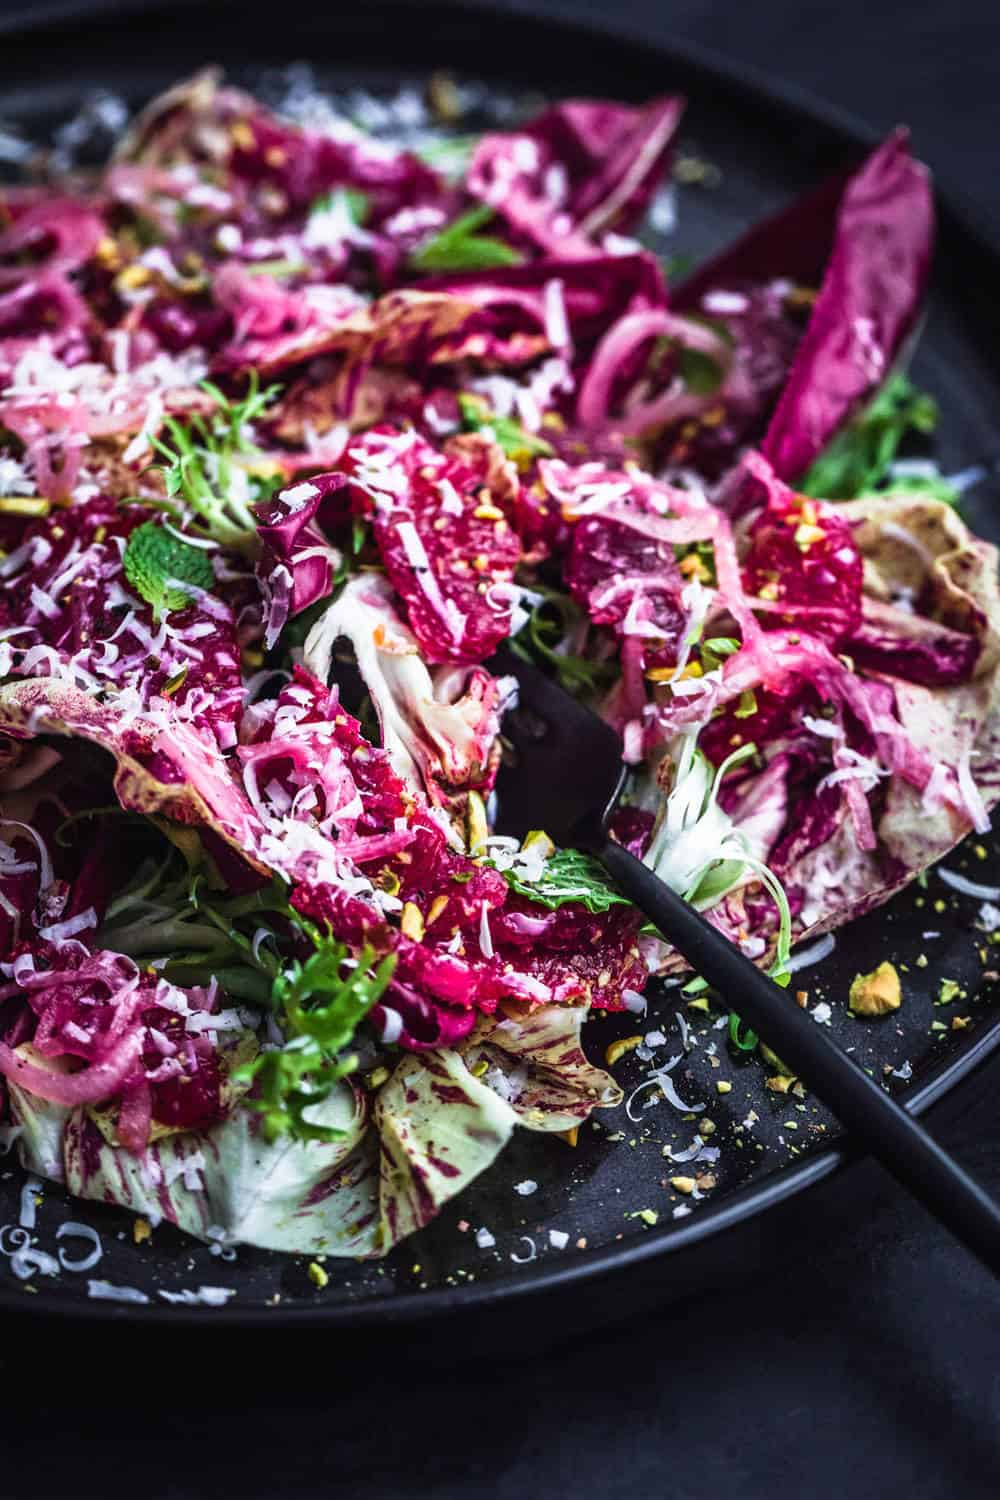 Blood Orange and fennel salad with chicories, pistachios, shredded cheese, mint and shallots on a black plate with a fork. Up close side angle shot.